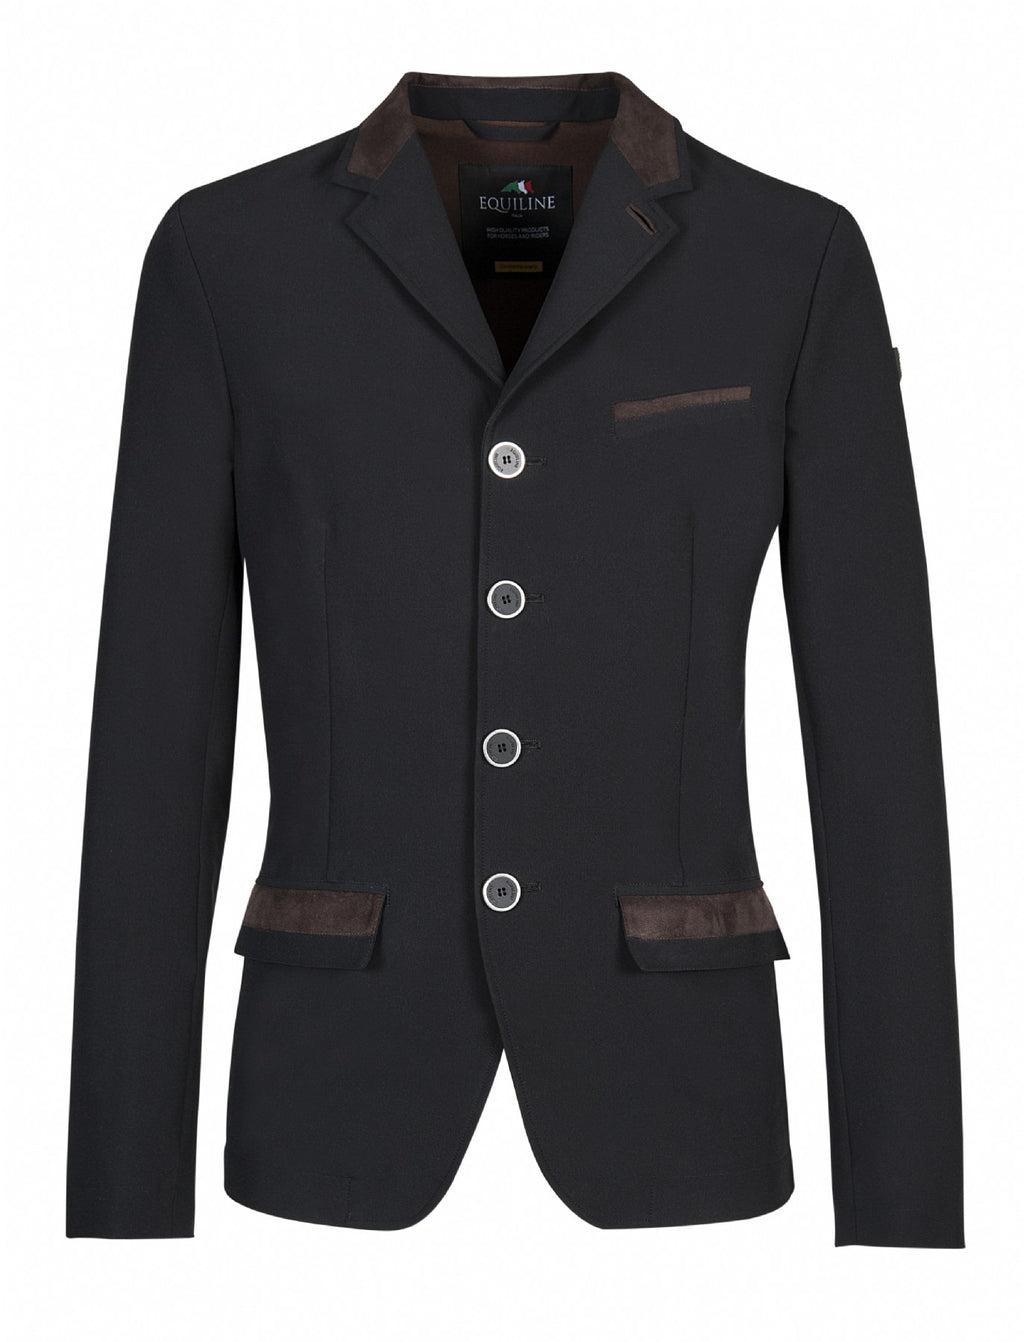 Albert Black men's show coat